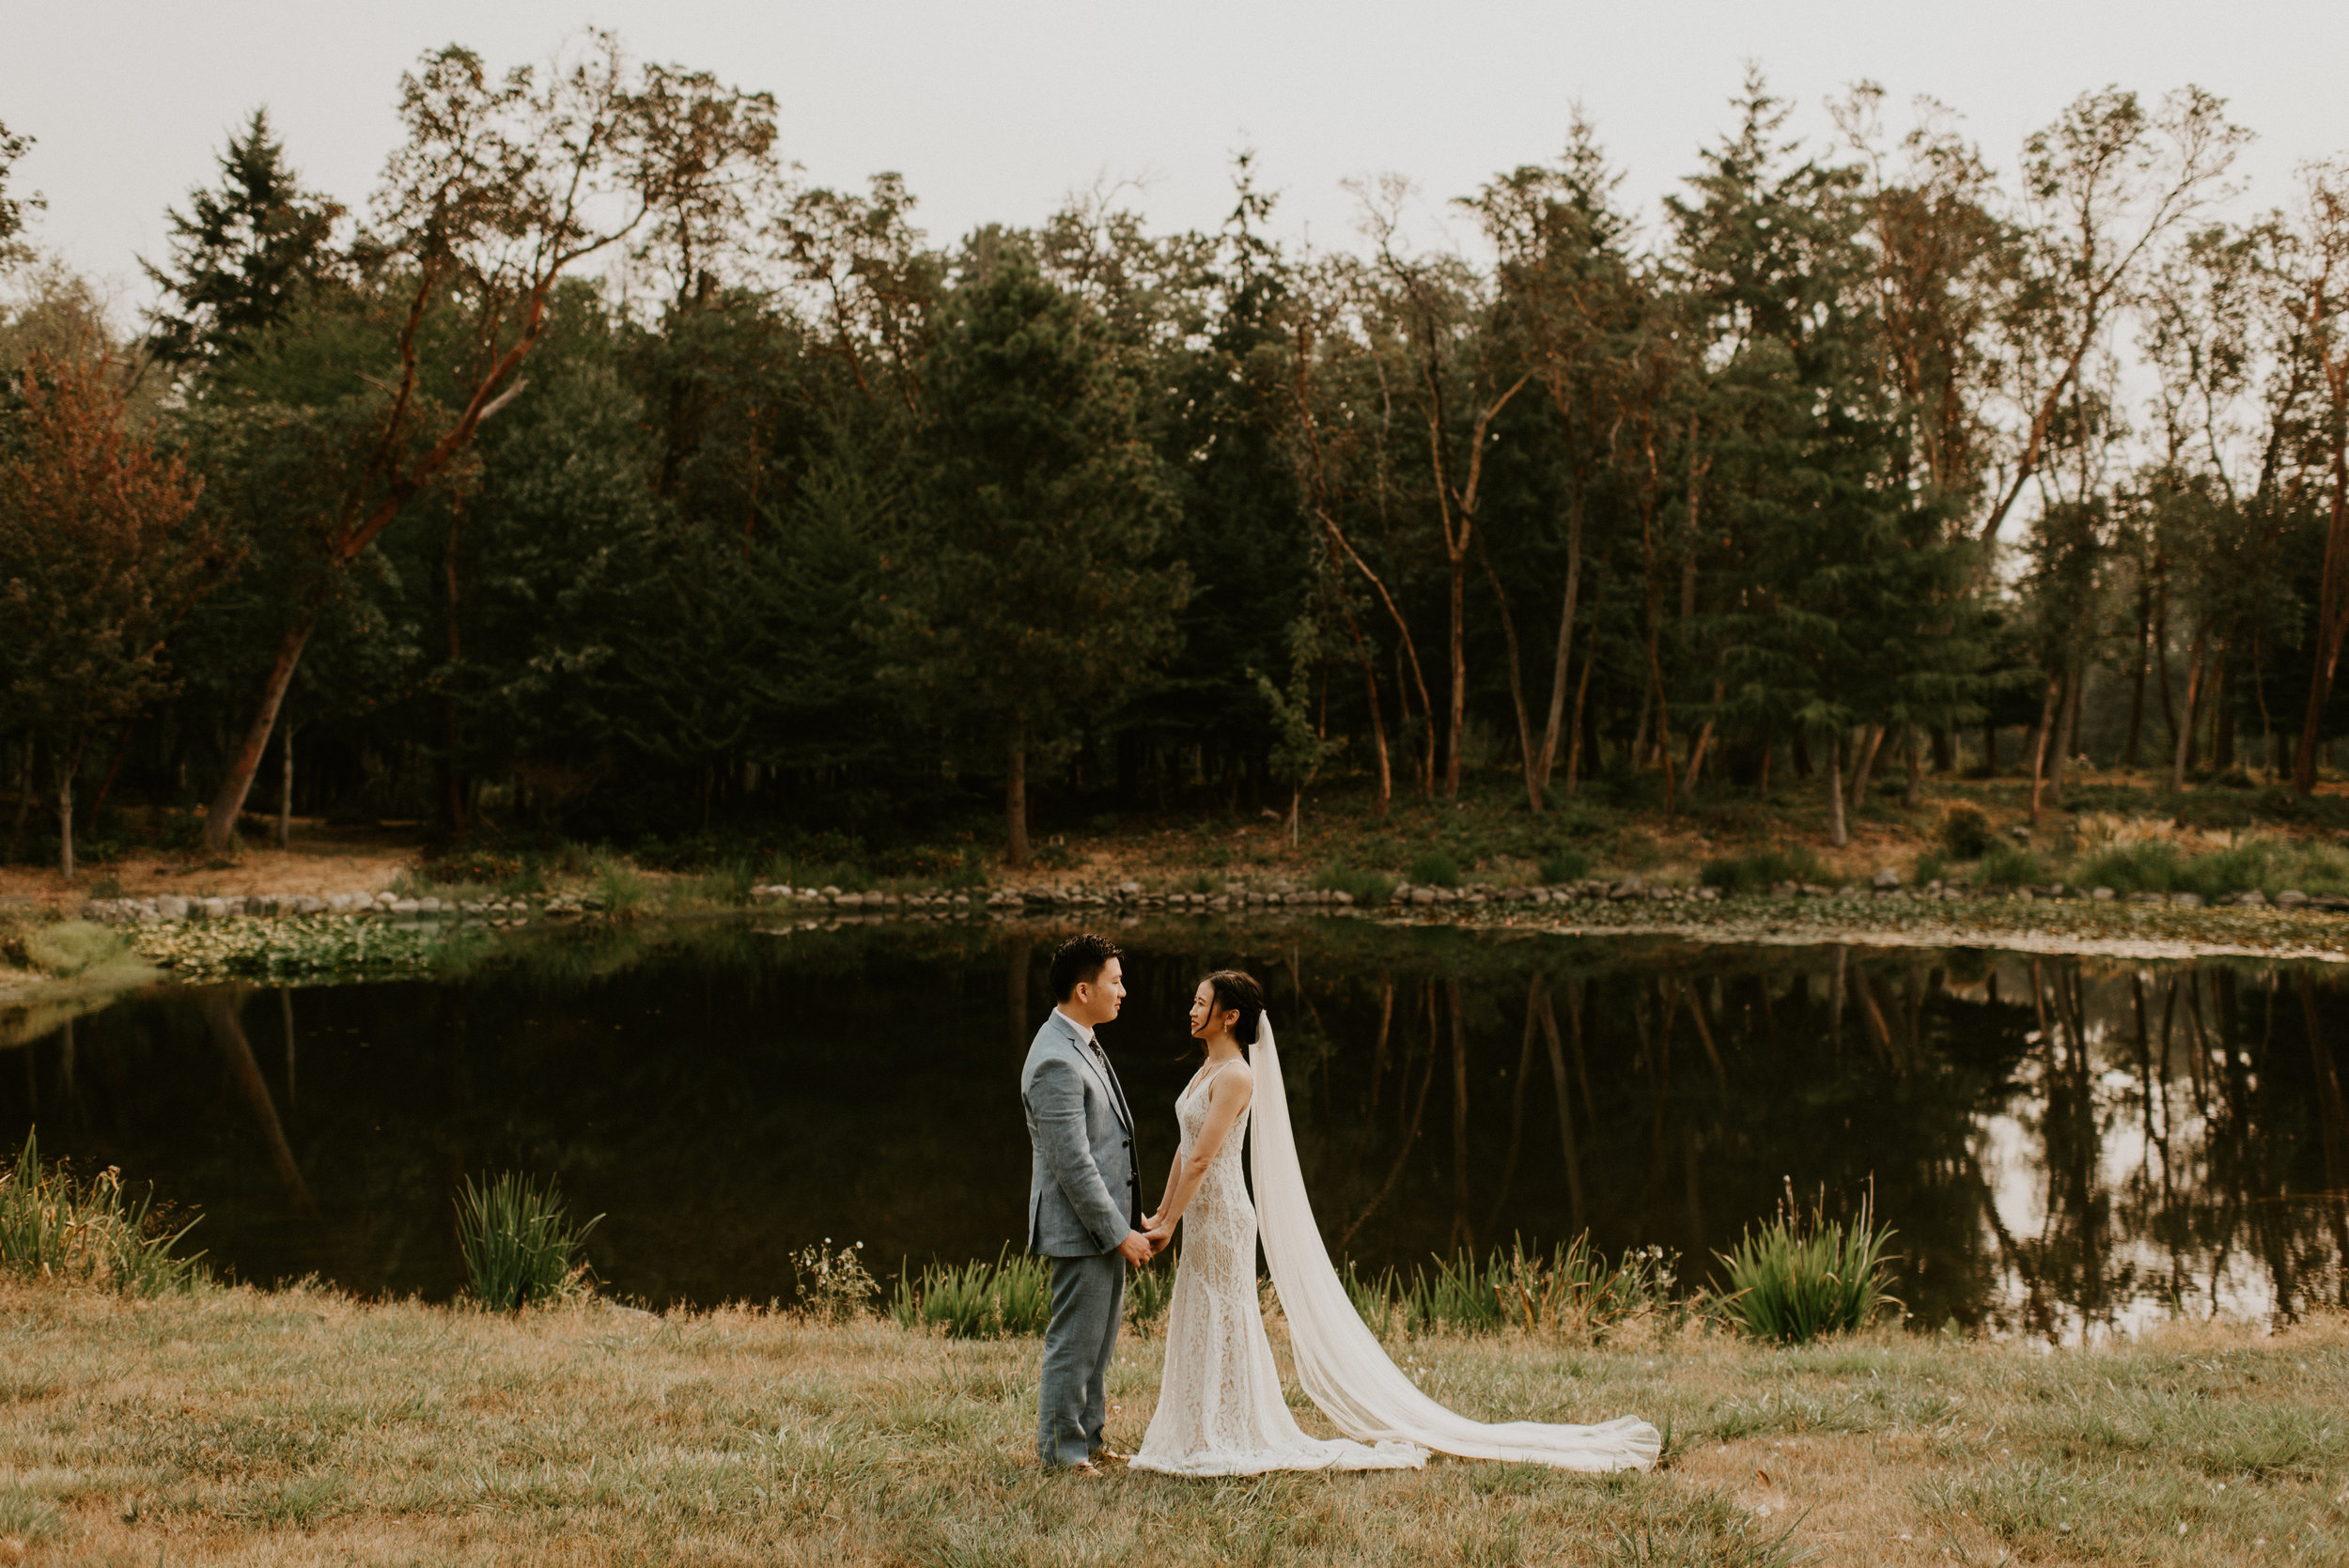 Janita + Jonathan's Intimate Wedding at Vashon Island, WA by Seattle Wedding Photographer Kamra Fuller Photography